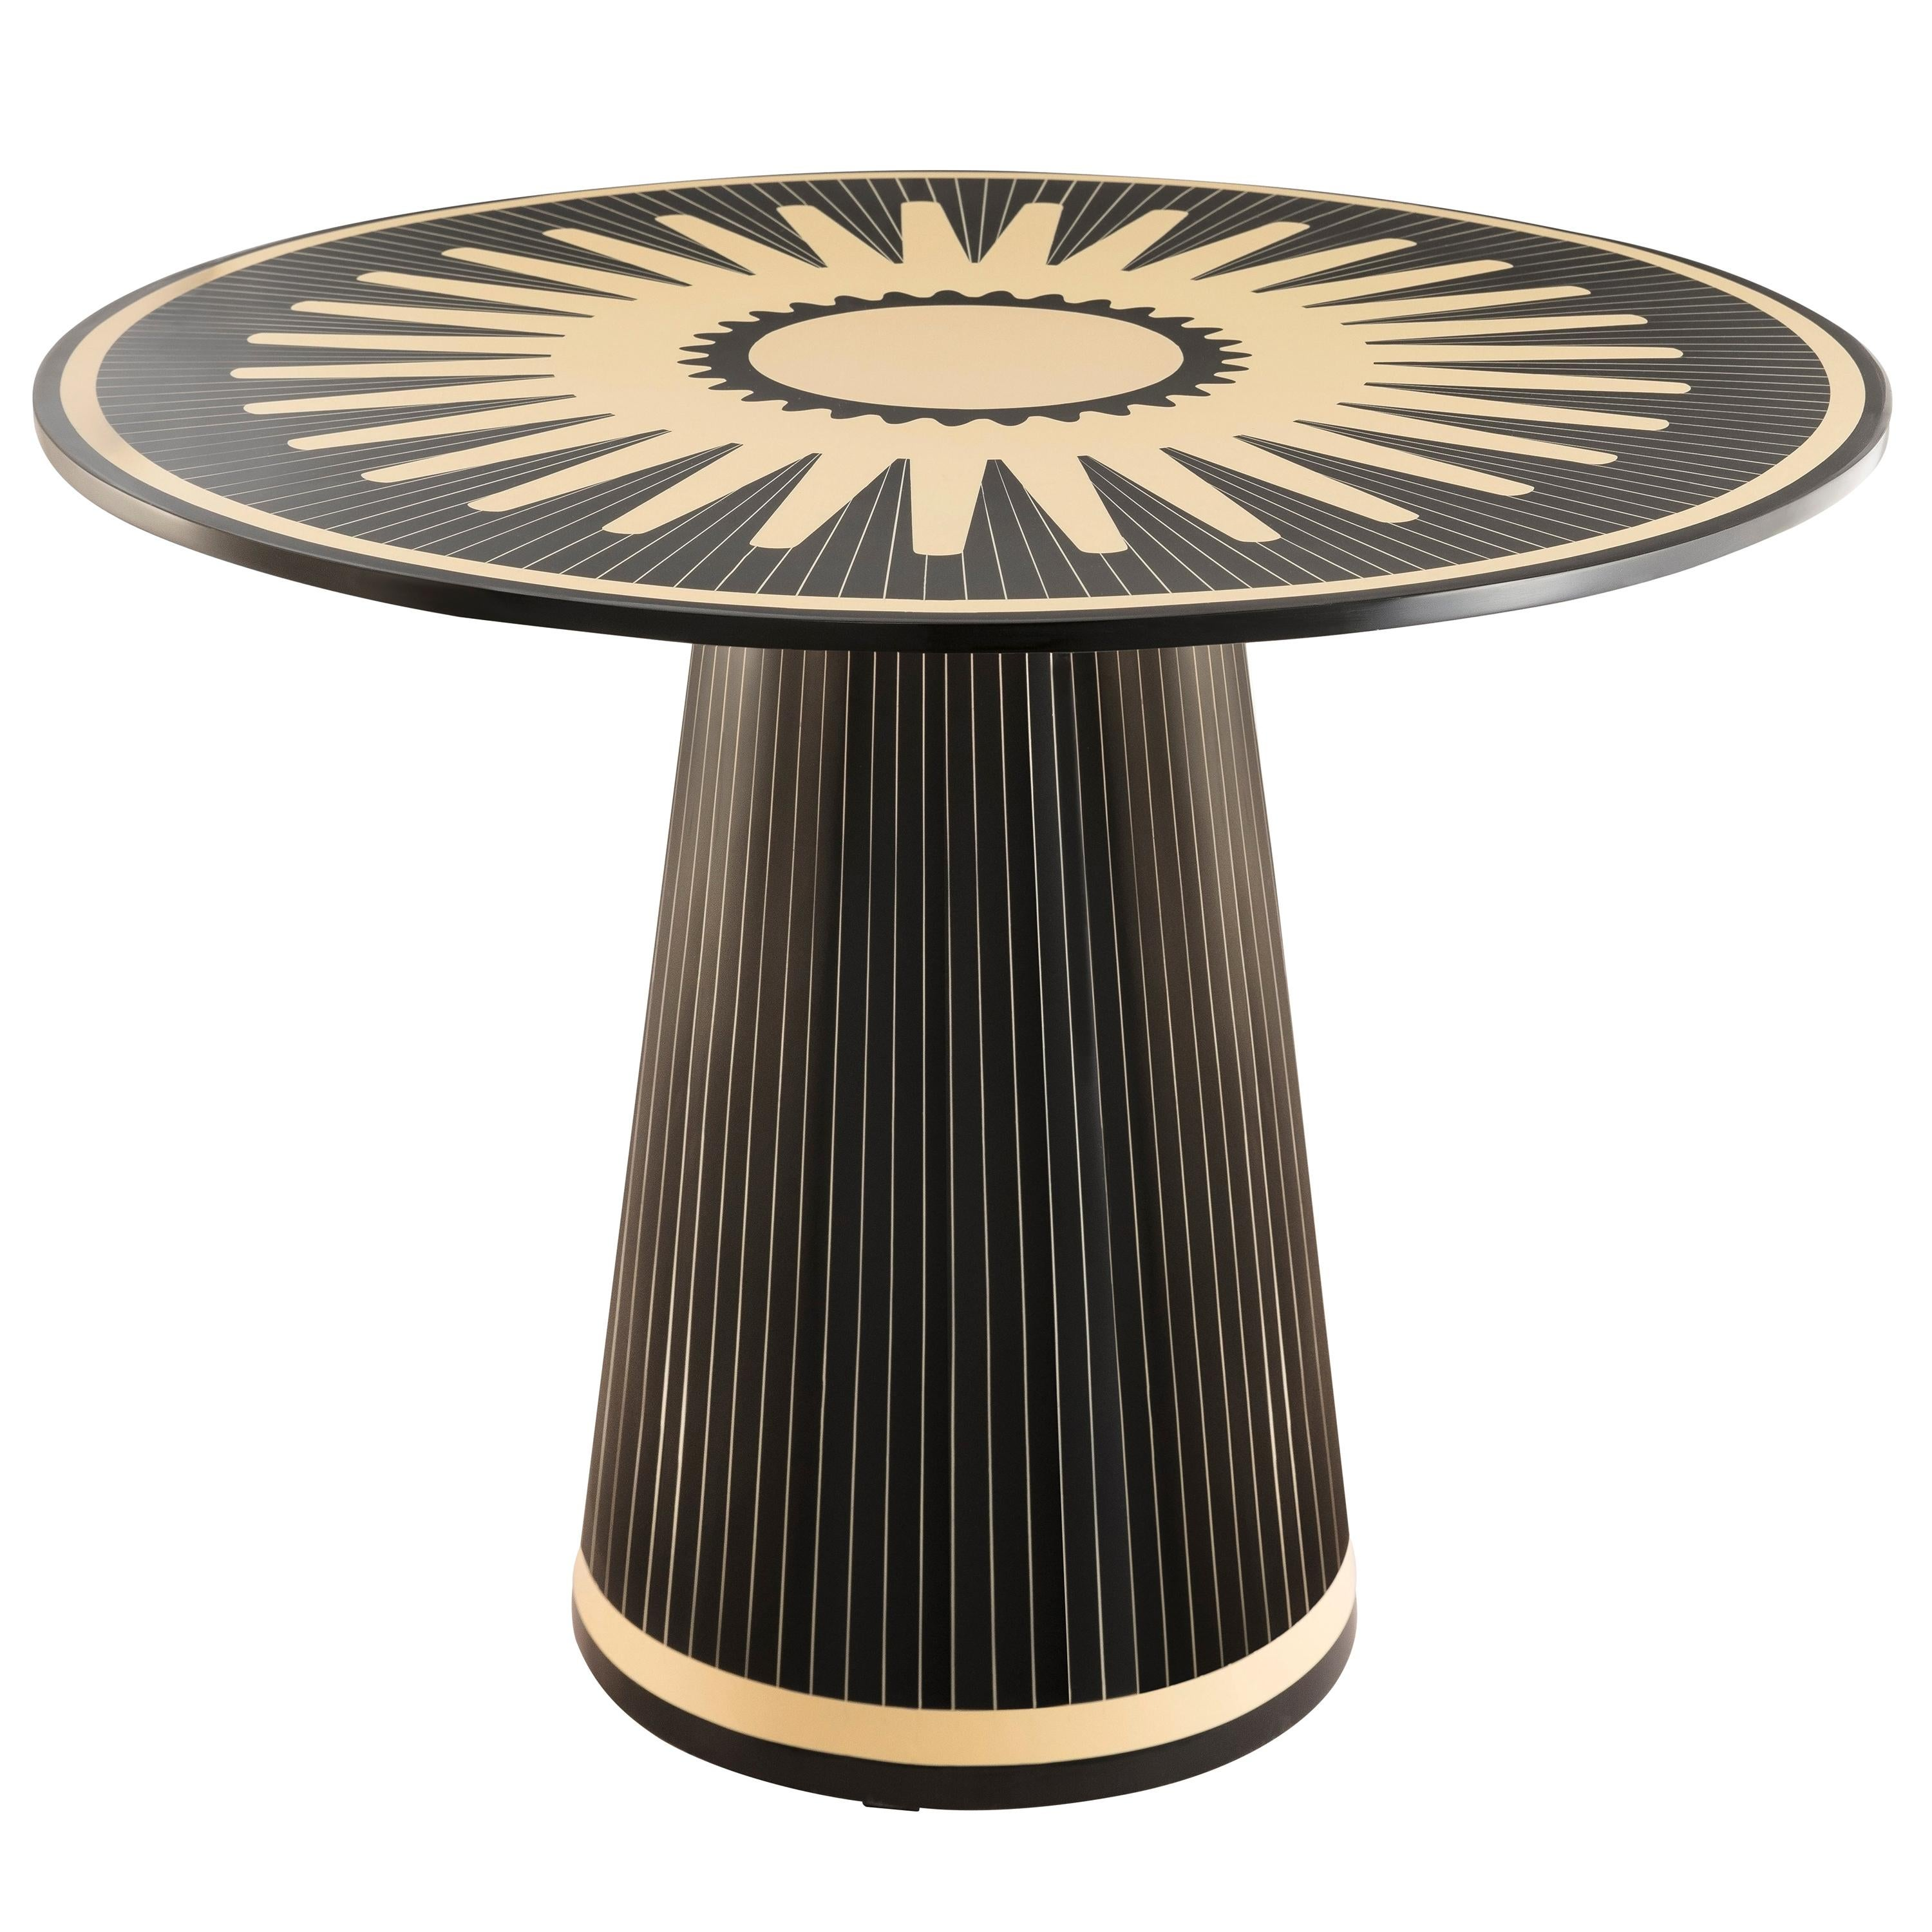 Circus Gala Black and White Side Table by Matteo Cibic